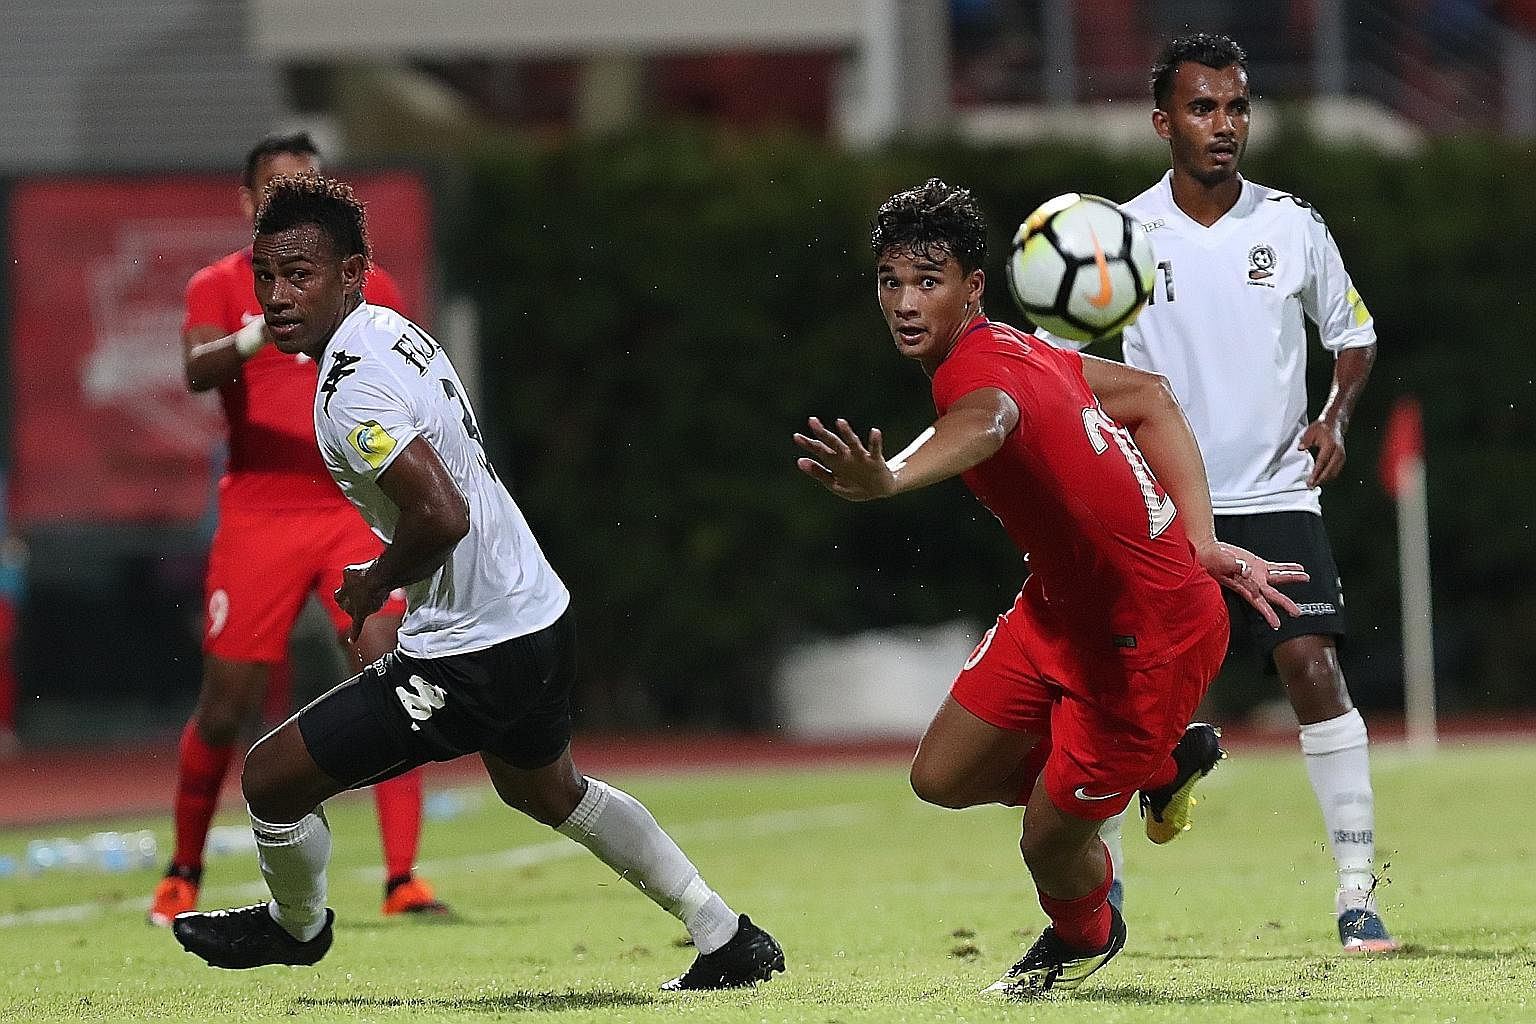 Two goals in two minutes, including the second from striker Ikhsan Fandi (at right), gave Singapore a 2-0 win over Fiji in a friendly at the Bishan Stadium last night. The result gave Ikhsan's father, Singapore icon Fandi Ahmad, his first win as inte